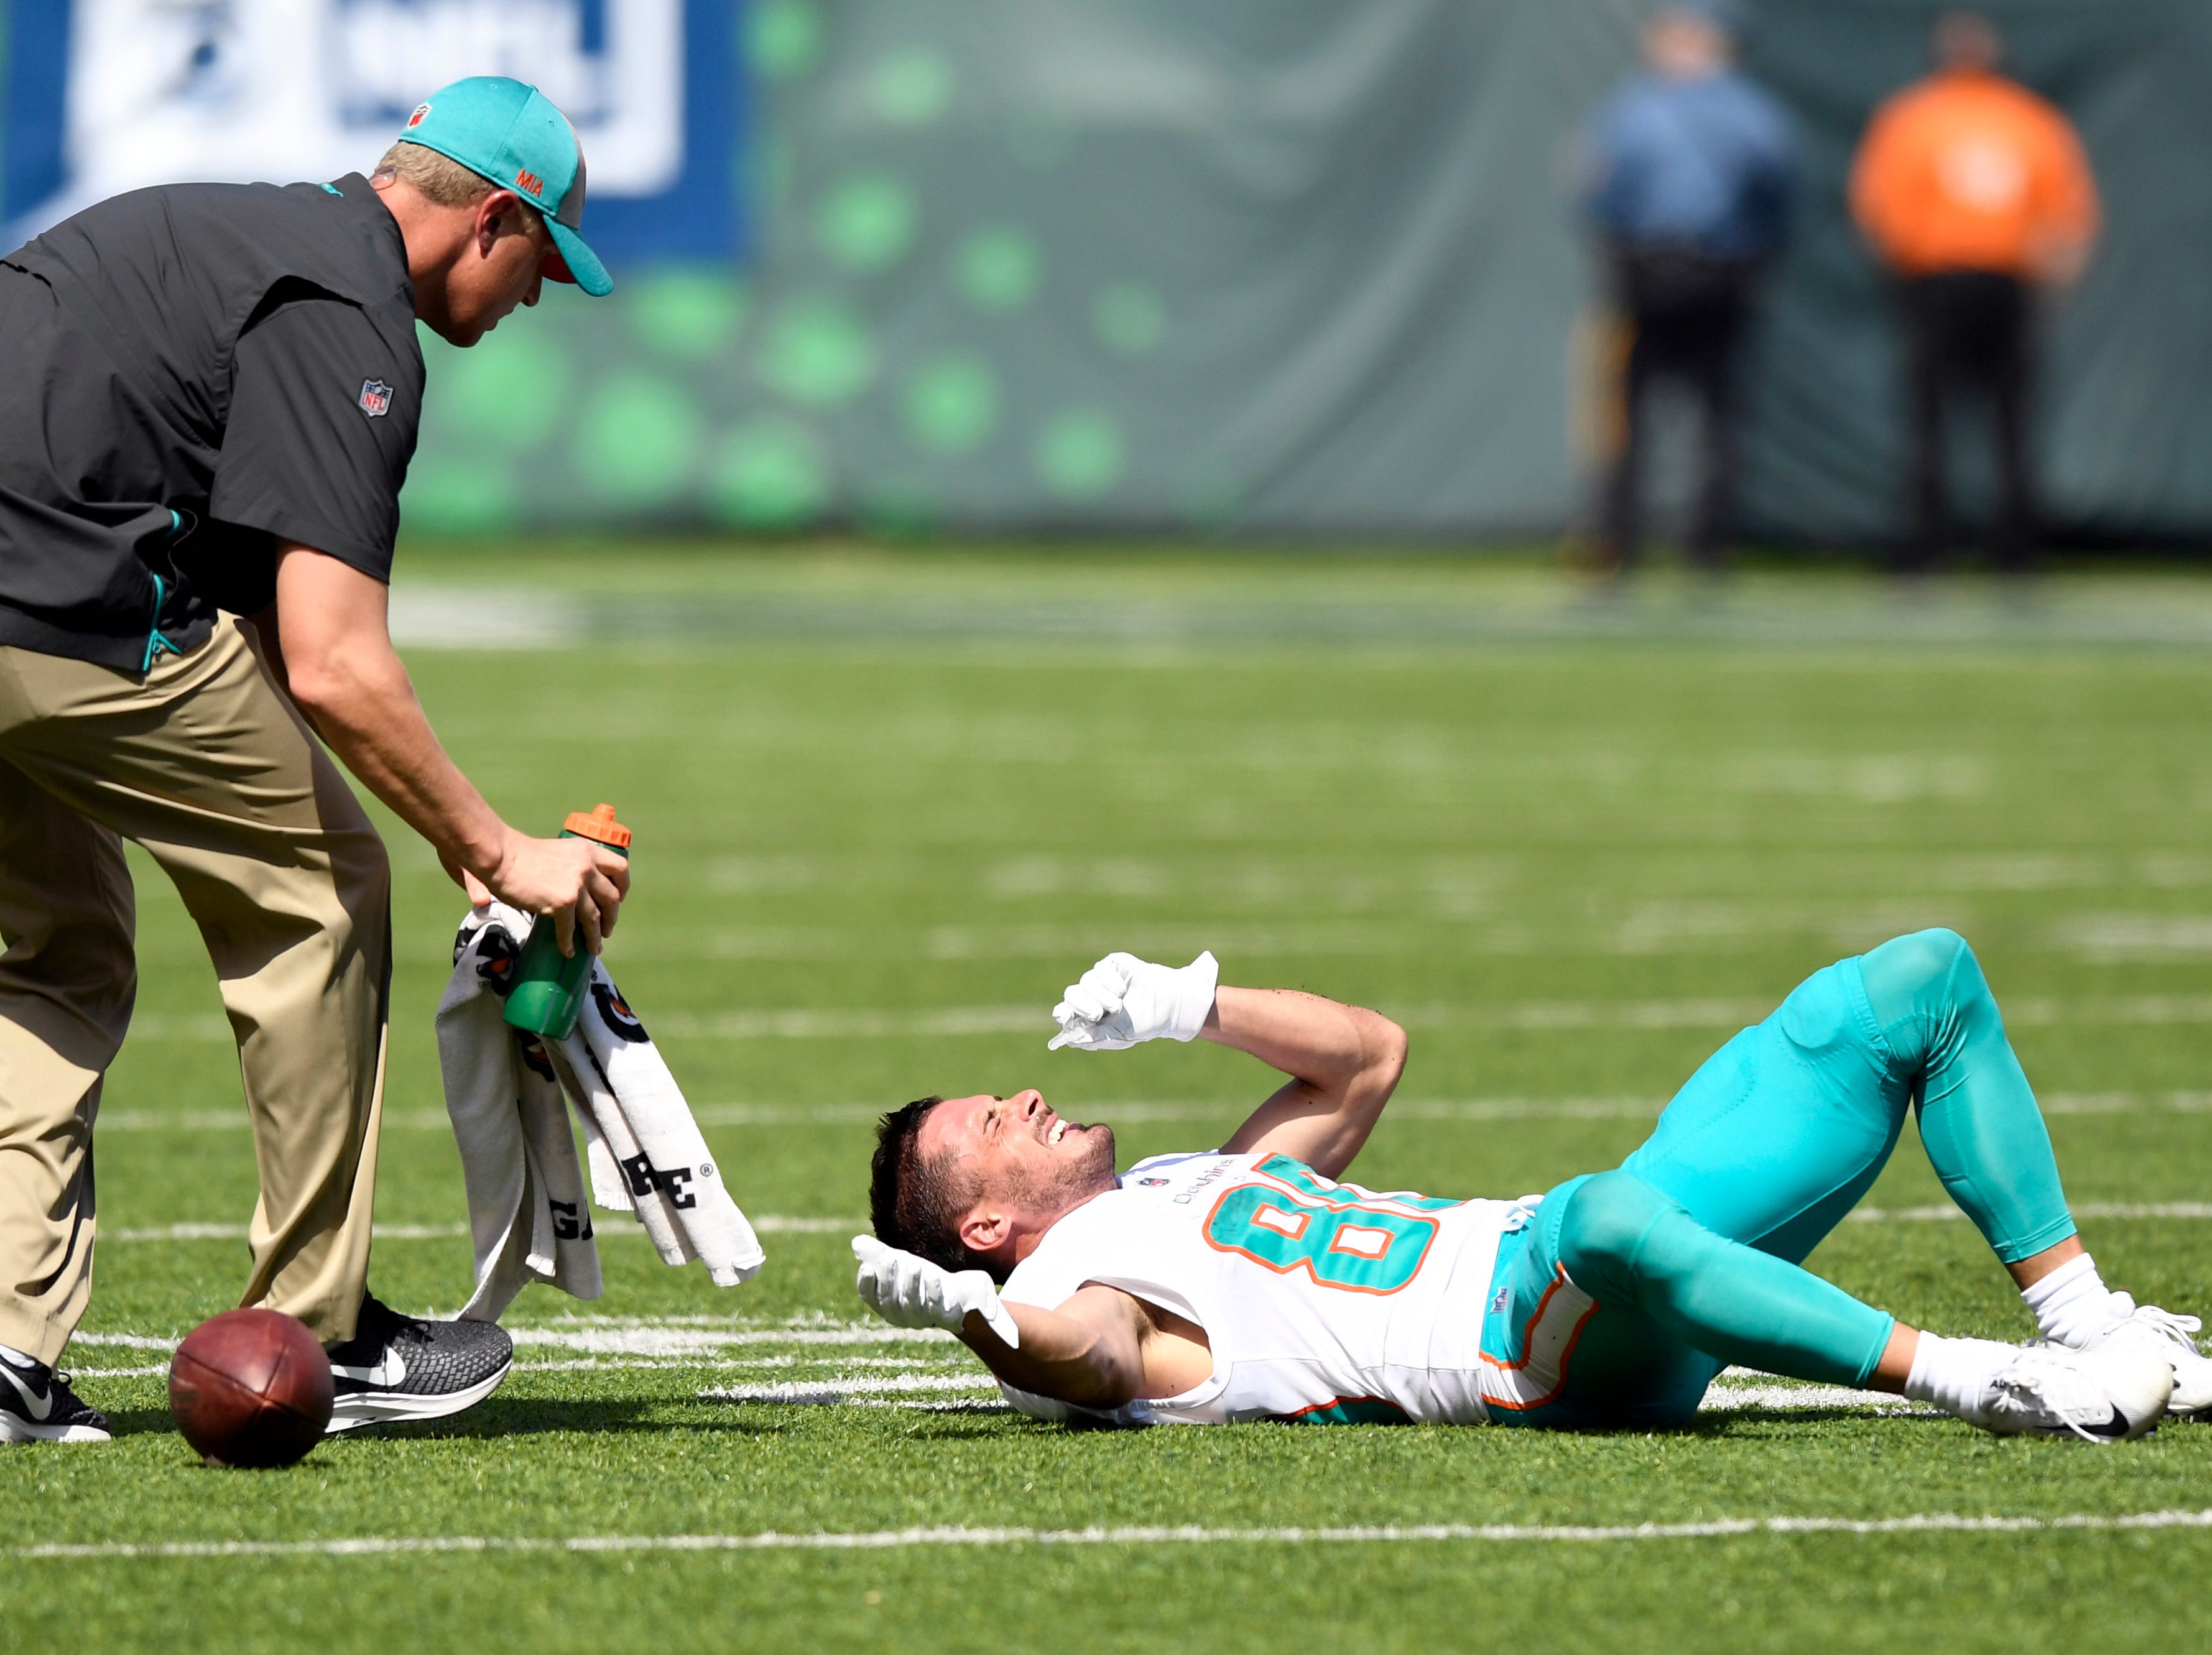 Miami Dolphins wide receiver Danny Amendola (80) grimaces in pain in Week 2 against the New York Jets at MetLife Stadium in East Rutherford, NJ on Sunday, September 16, 2018.